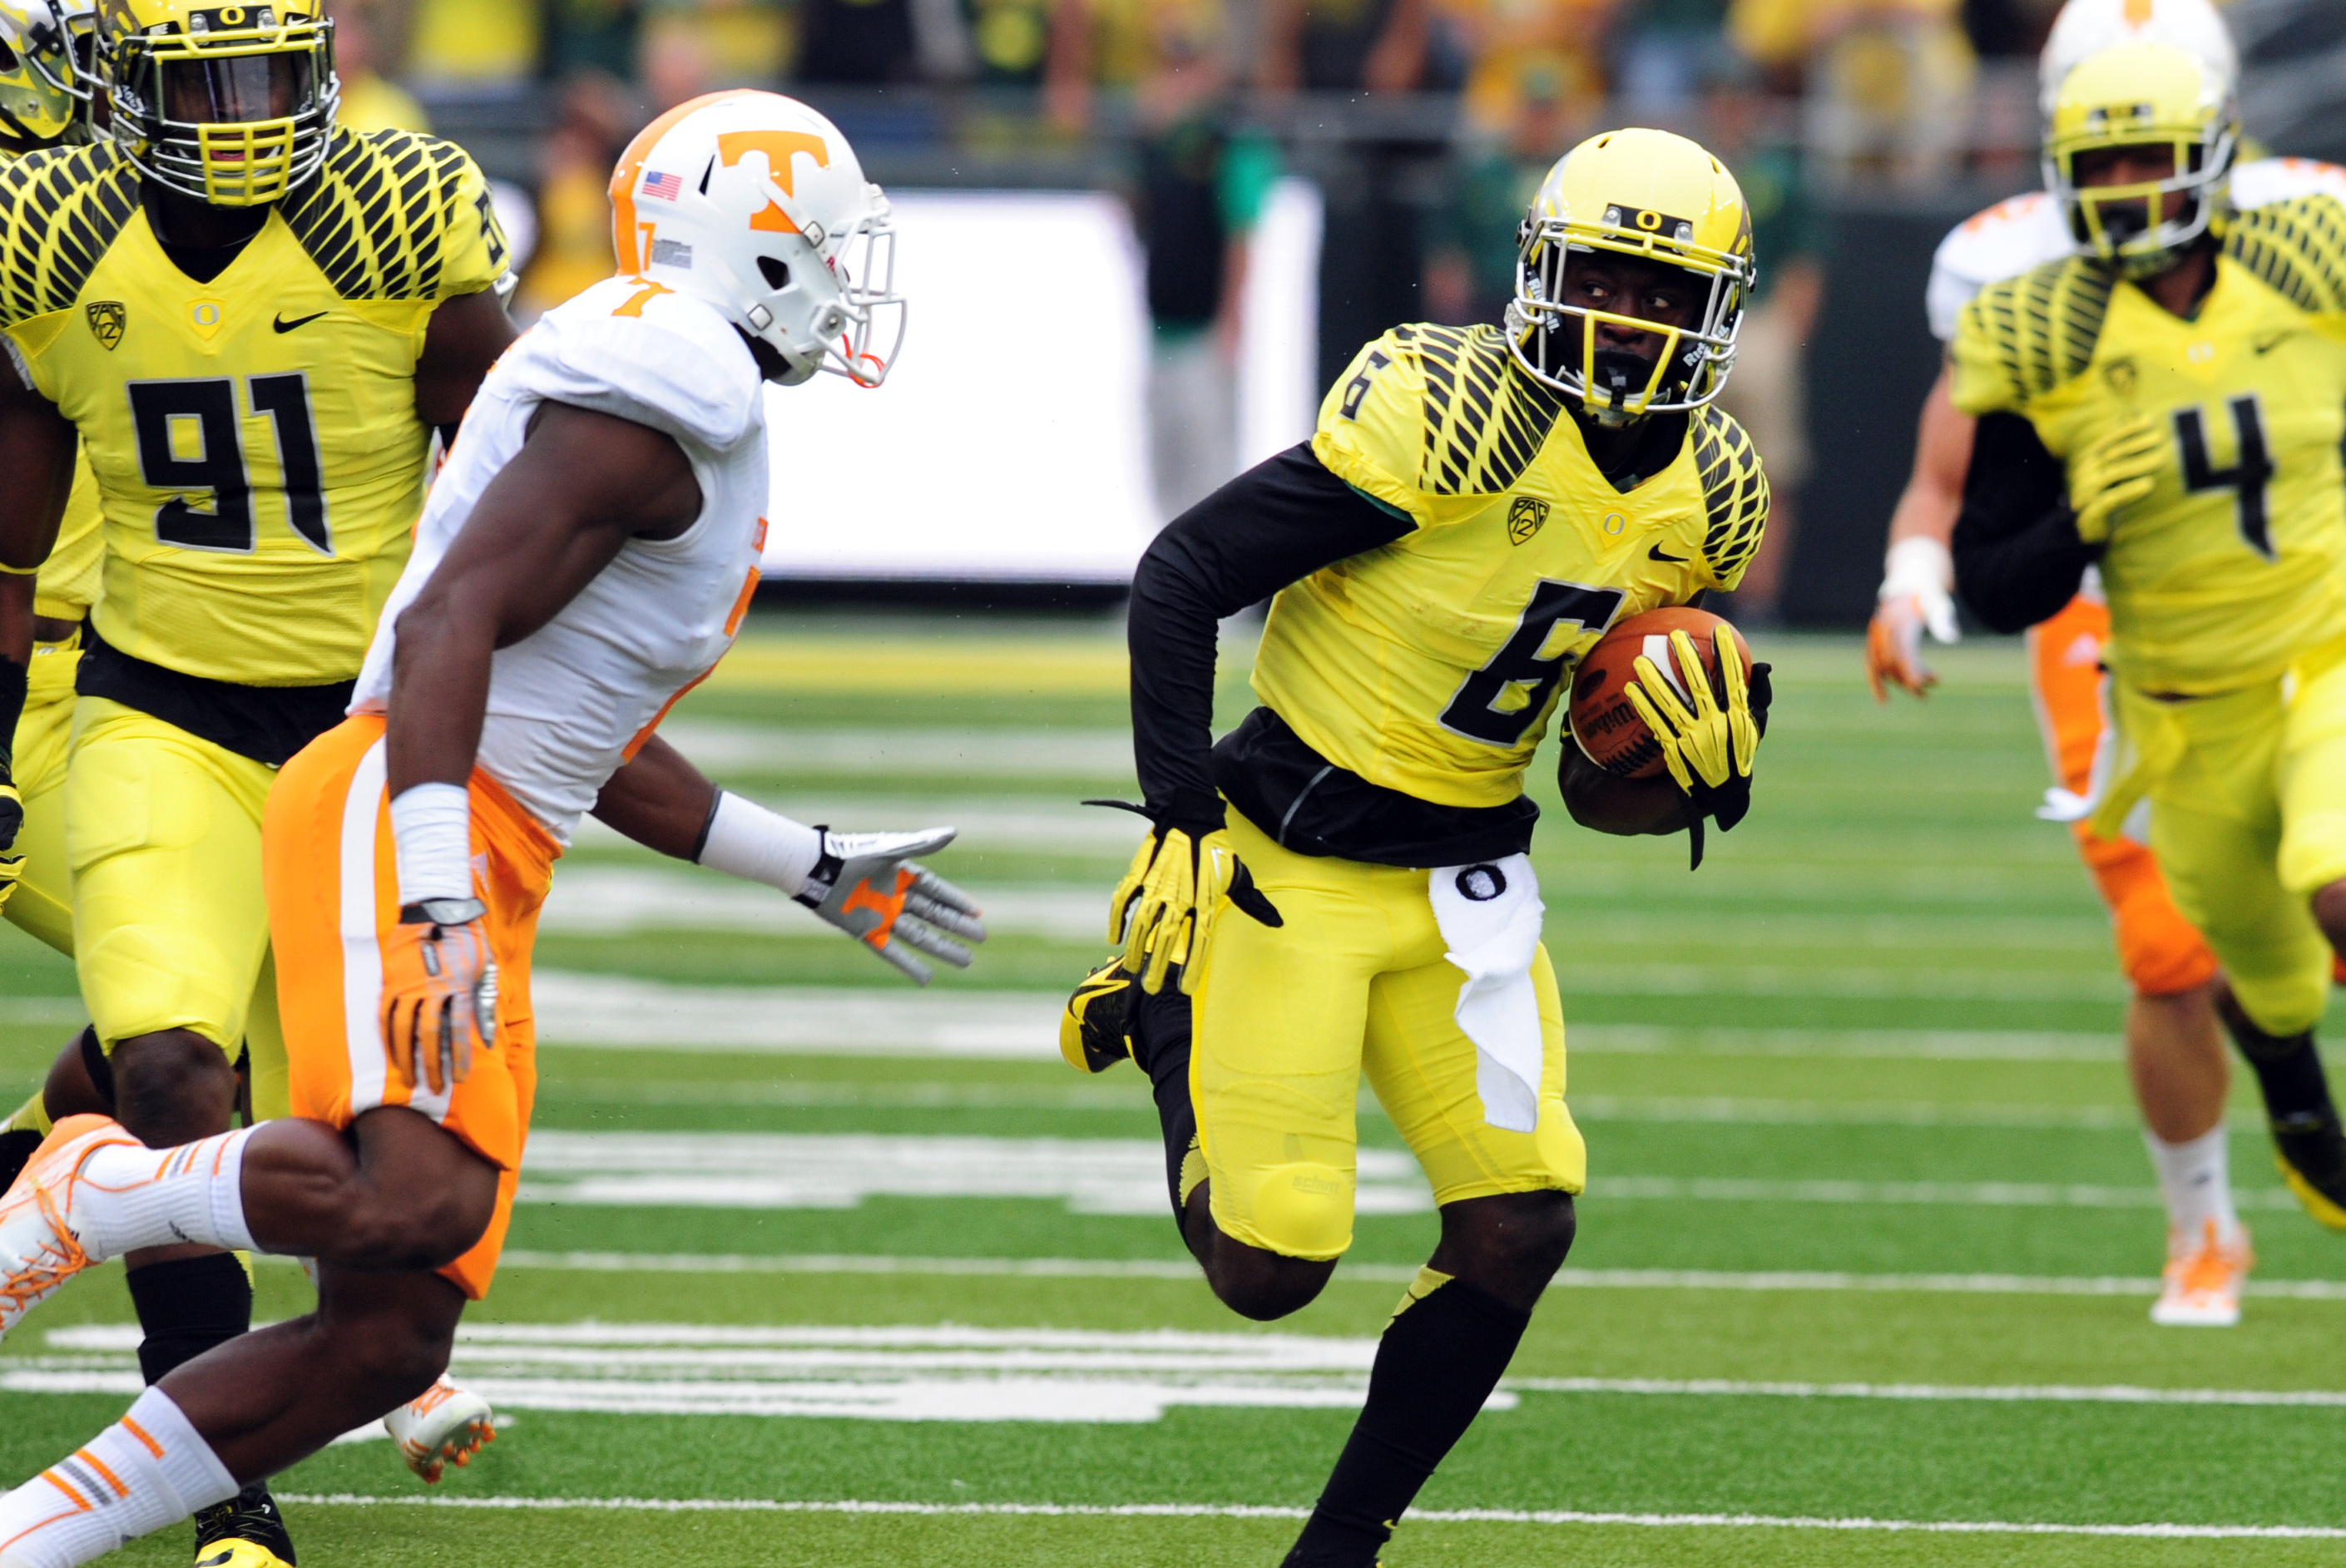 De'Anthony Thomas NFL Draft 2014: Highlights, Scouting ...